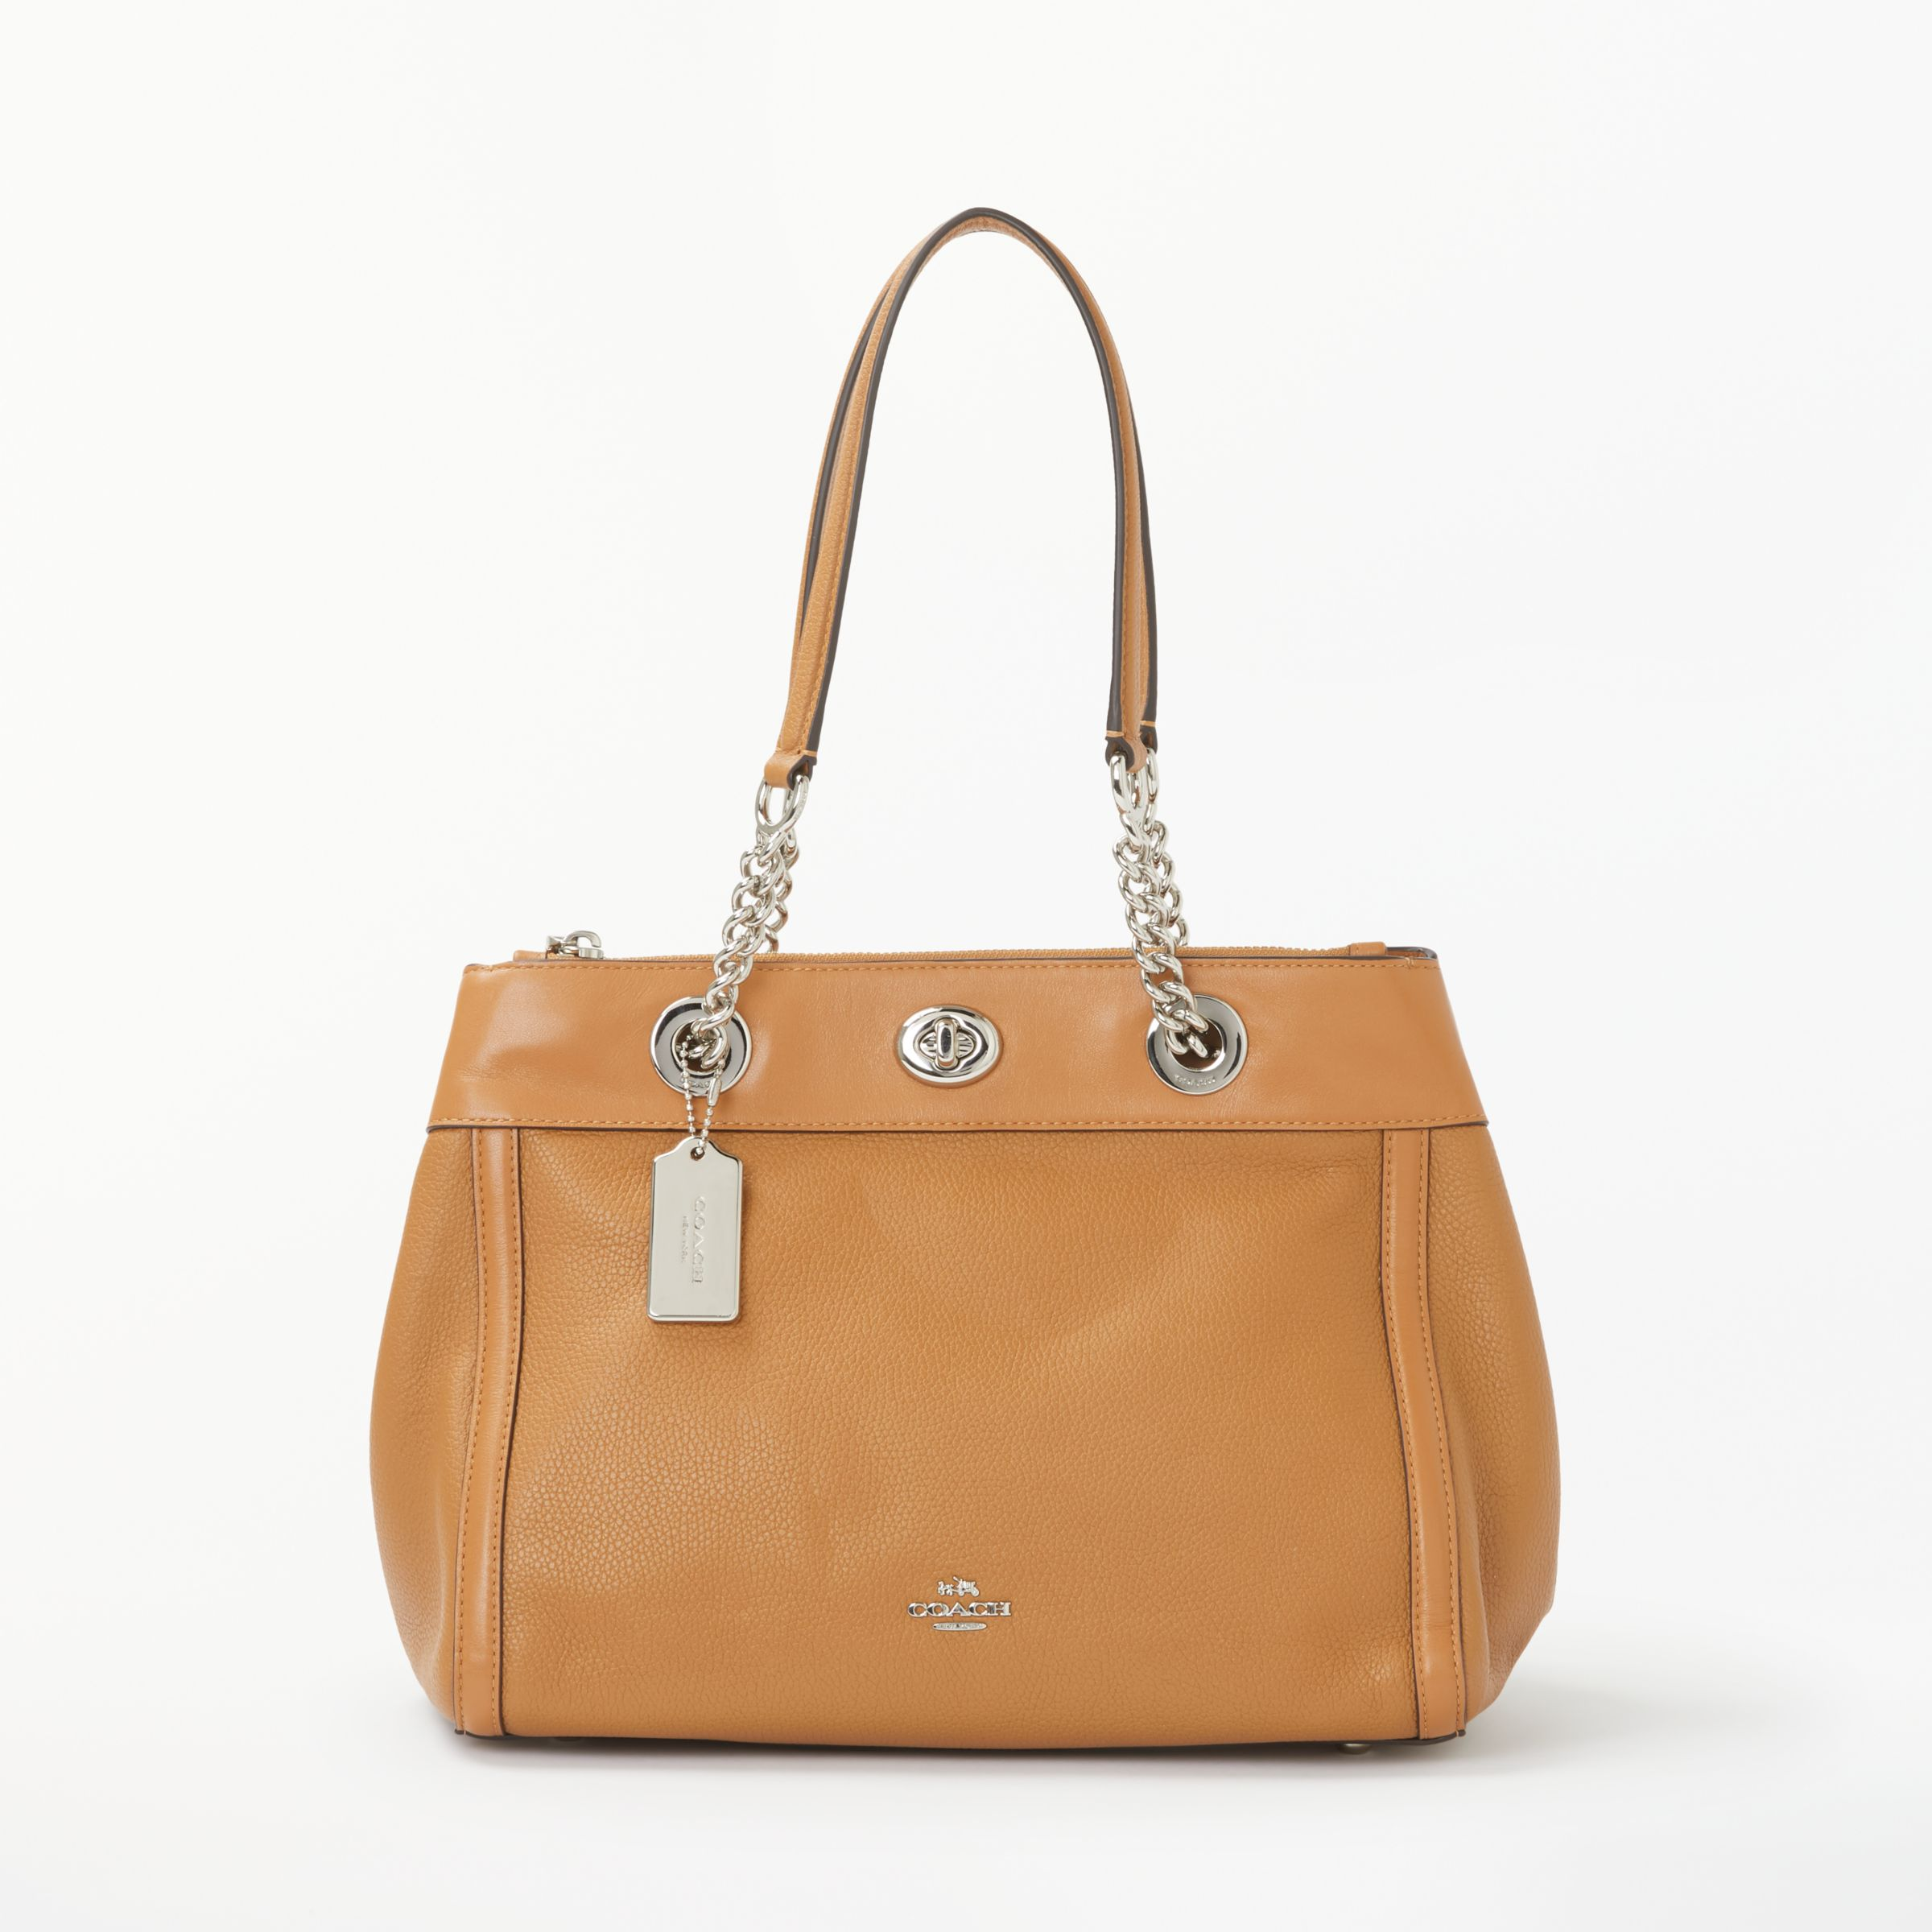 Coach Turnlock Edie Leather Carryall Shoulder Bag at John Lewis   Partners 2417f58f9f34e